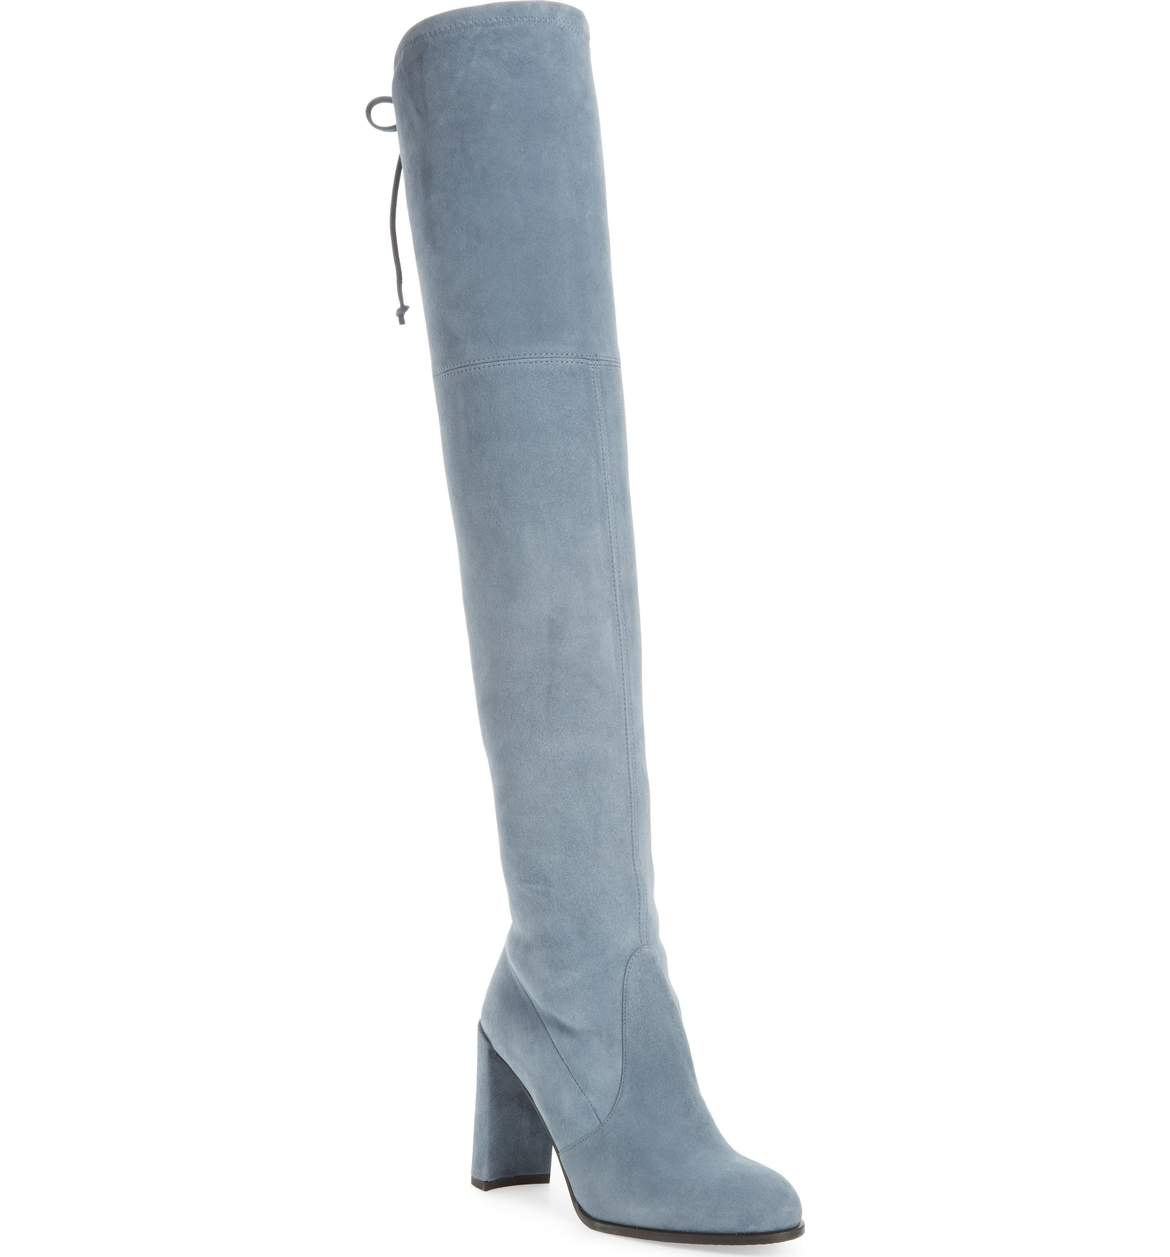 Stuart Weitzman Hiline Over the Knee Boot - Take a twist on a classic-meets-trendy piece with this pop of blue.